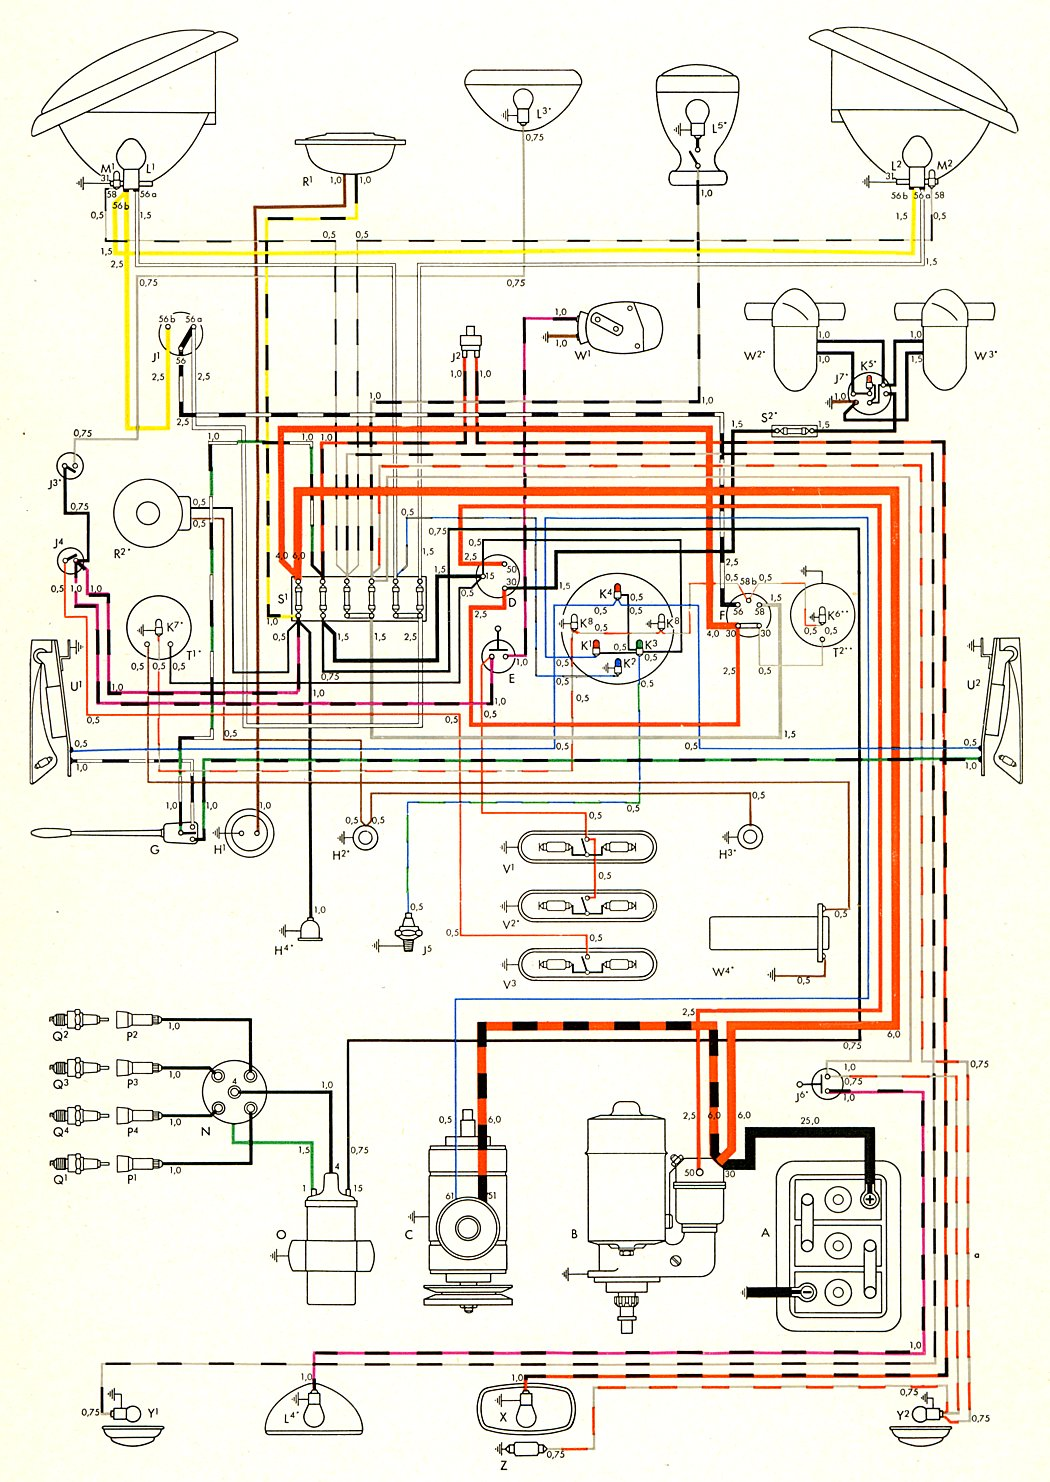 bus_nov57 1957 bus wiring diagram thegoldenbug com 1971 vw bus wiring diagram at highcare.asia